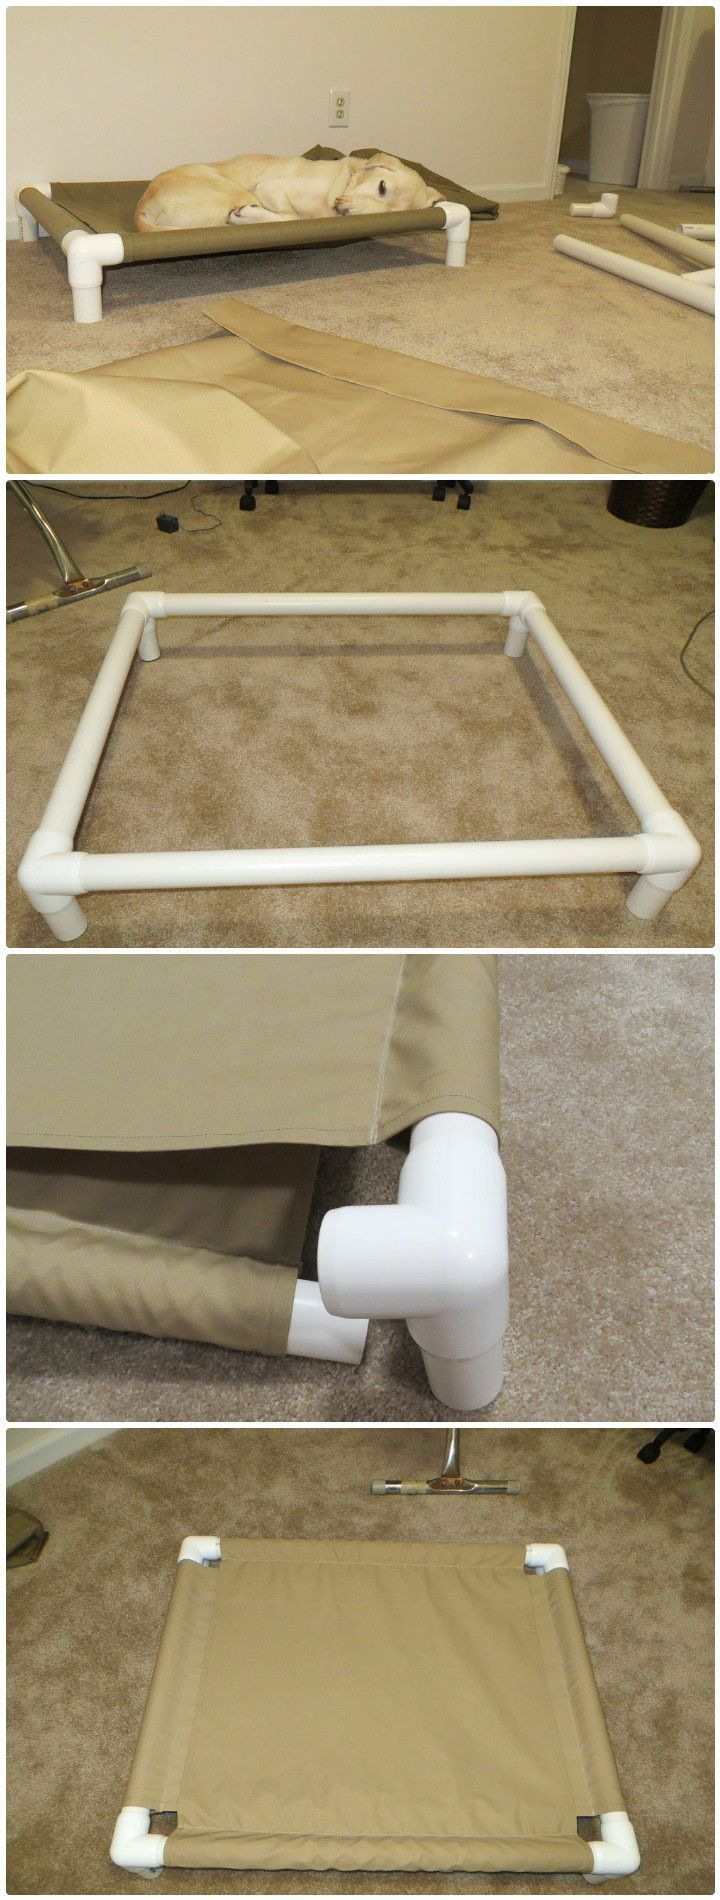 Diy Projects 48 Diy Projects Out Of Pvc Pipe You Should Make Dog Cots Pvc